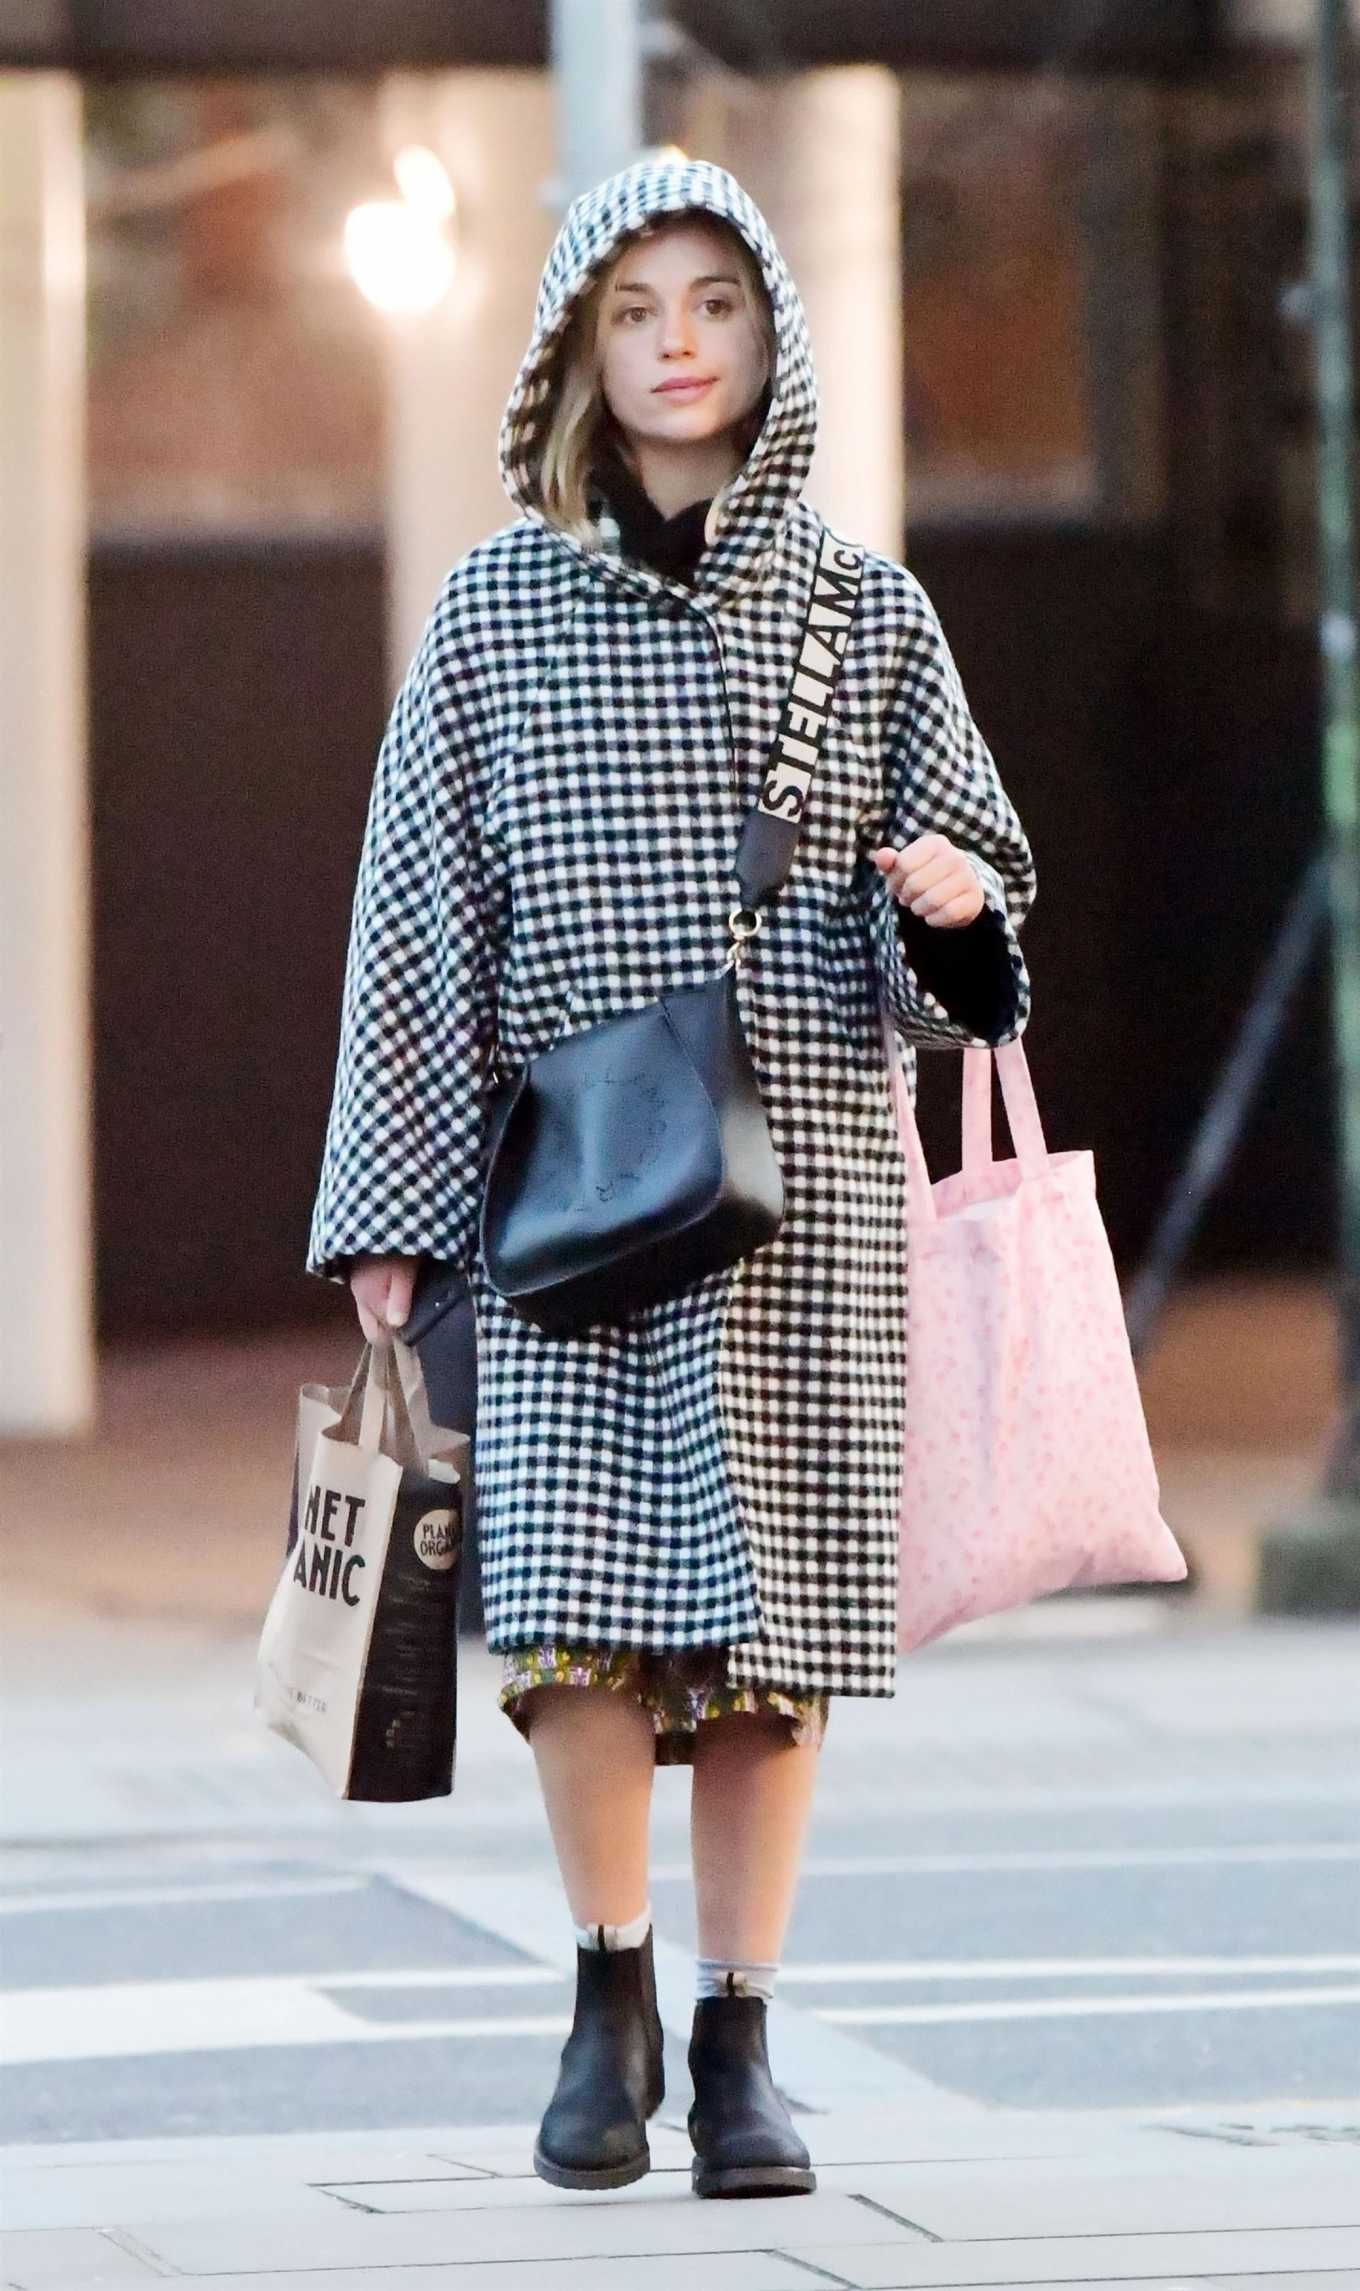 Amelia Windsor 2020 : Amelia Windsor – Looks stylis while out in the trendy area of Notting Hill-35